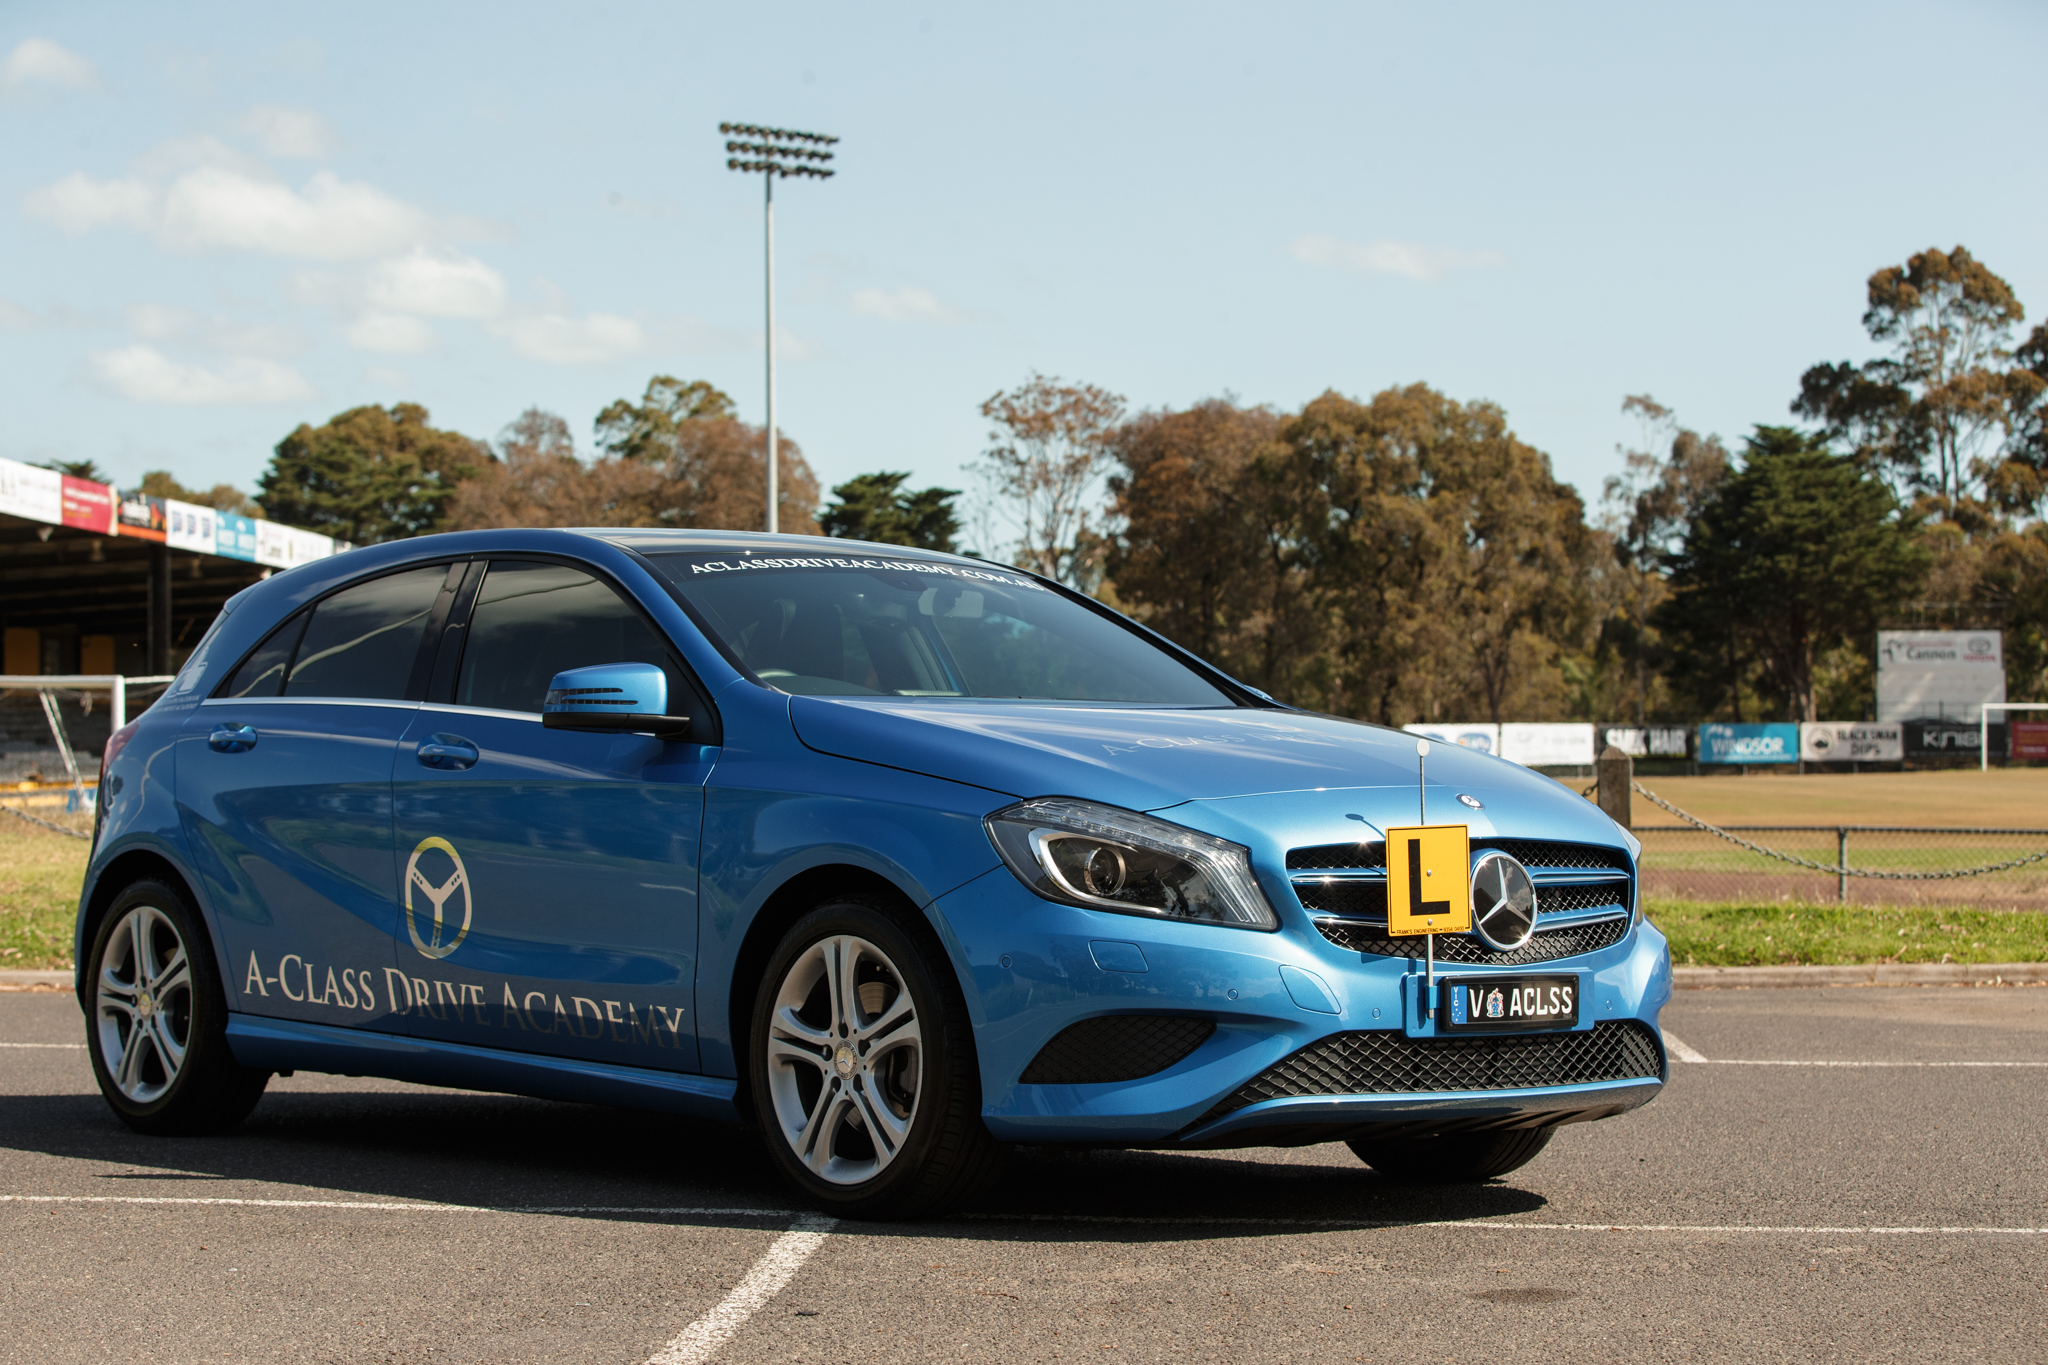 LEARN TO DRIVE WITH CONFIDENCE IN A 5 STAR ANCAP MERCEDES BENZ